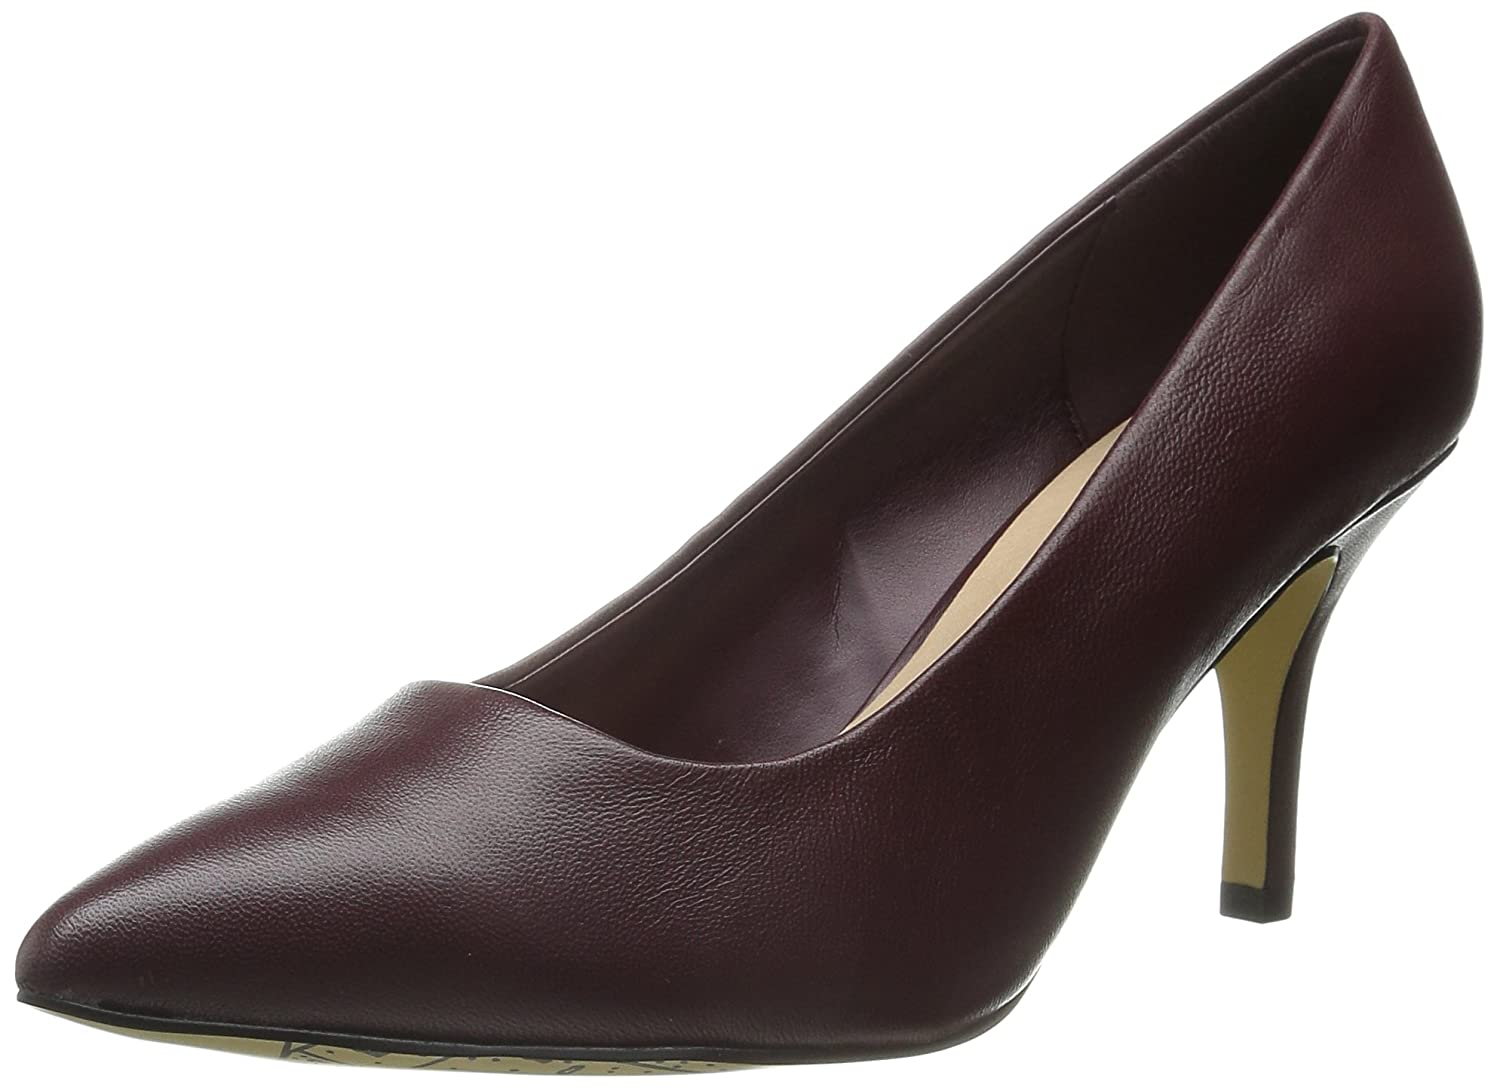 Bella Vita Women's Define Dress Pump B00ZICIXQS 8.5 XW US|Burgundy Leather